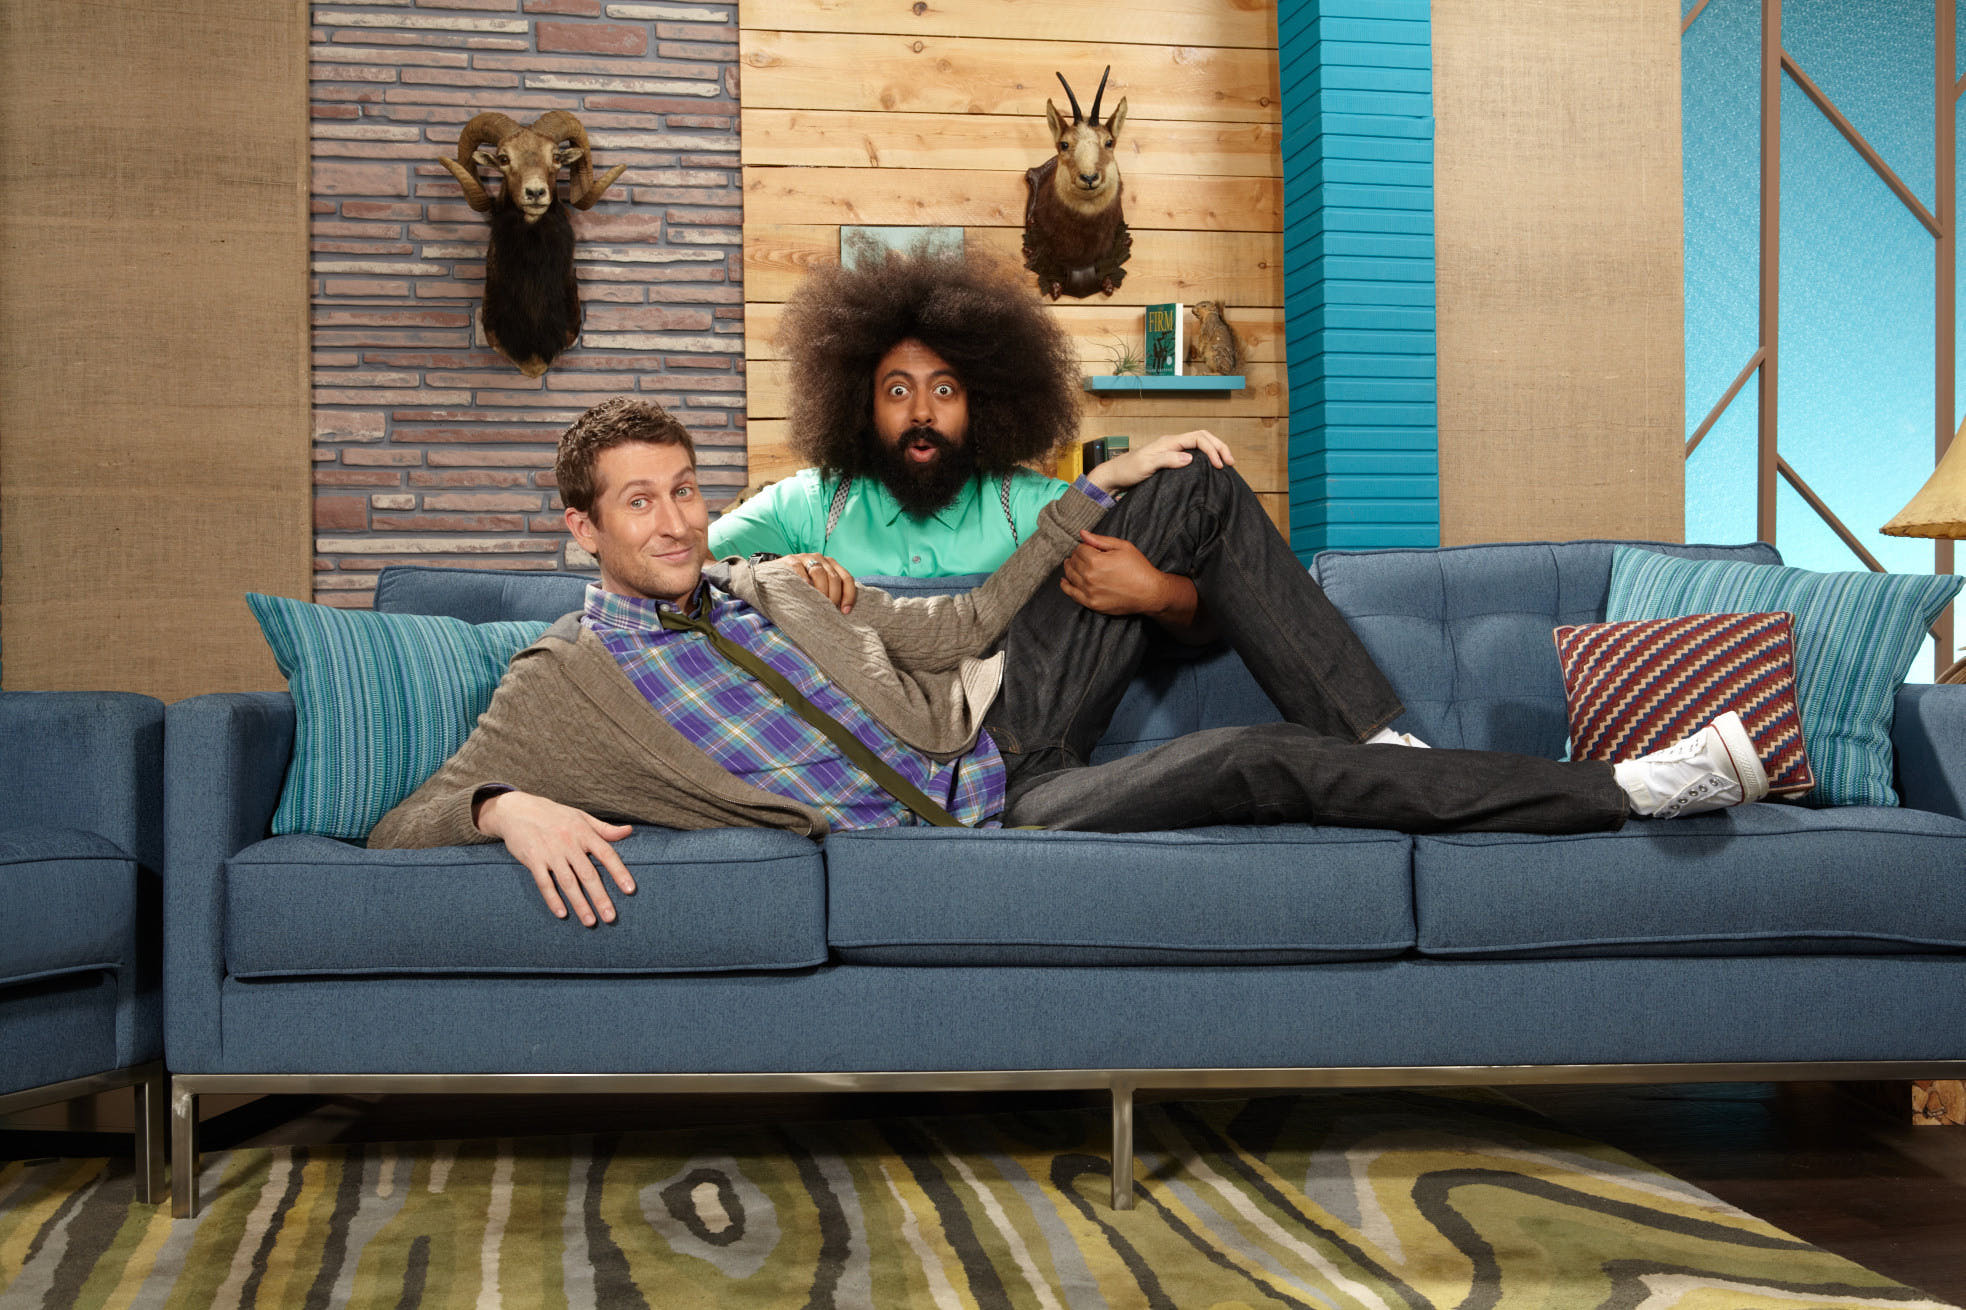 Scott Aukerman y Reggie Watts de Comedy Bang Bang de IFC